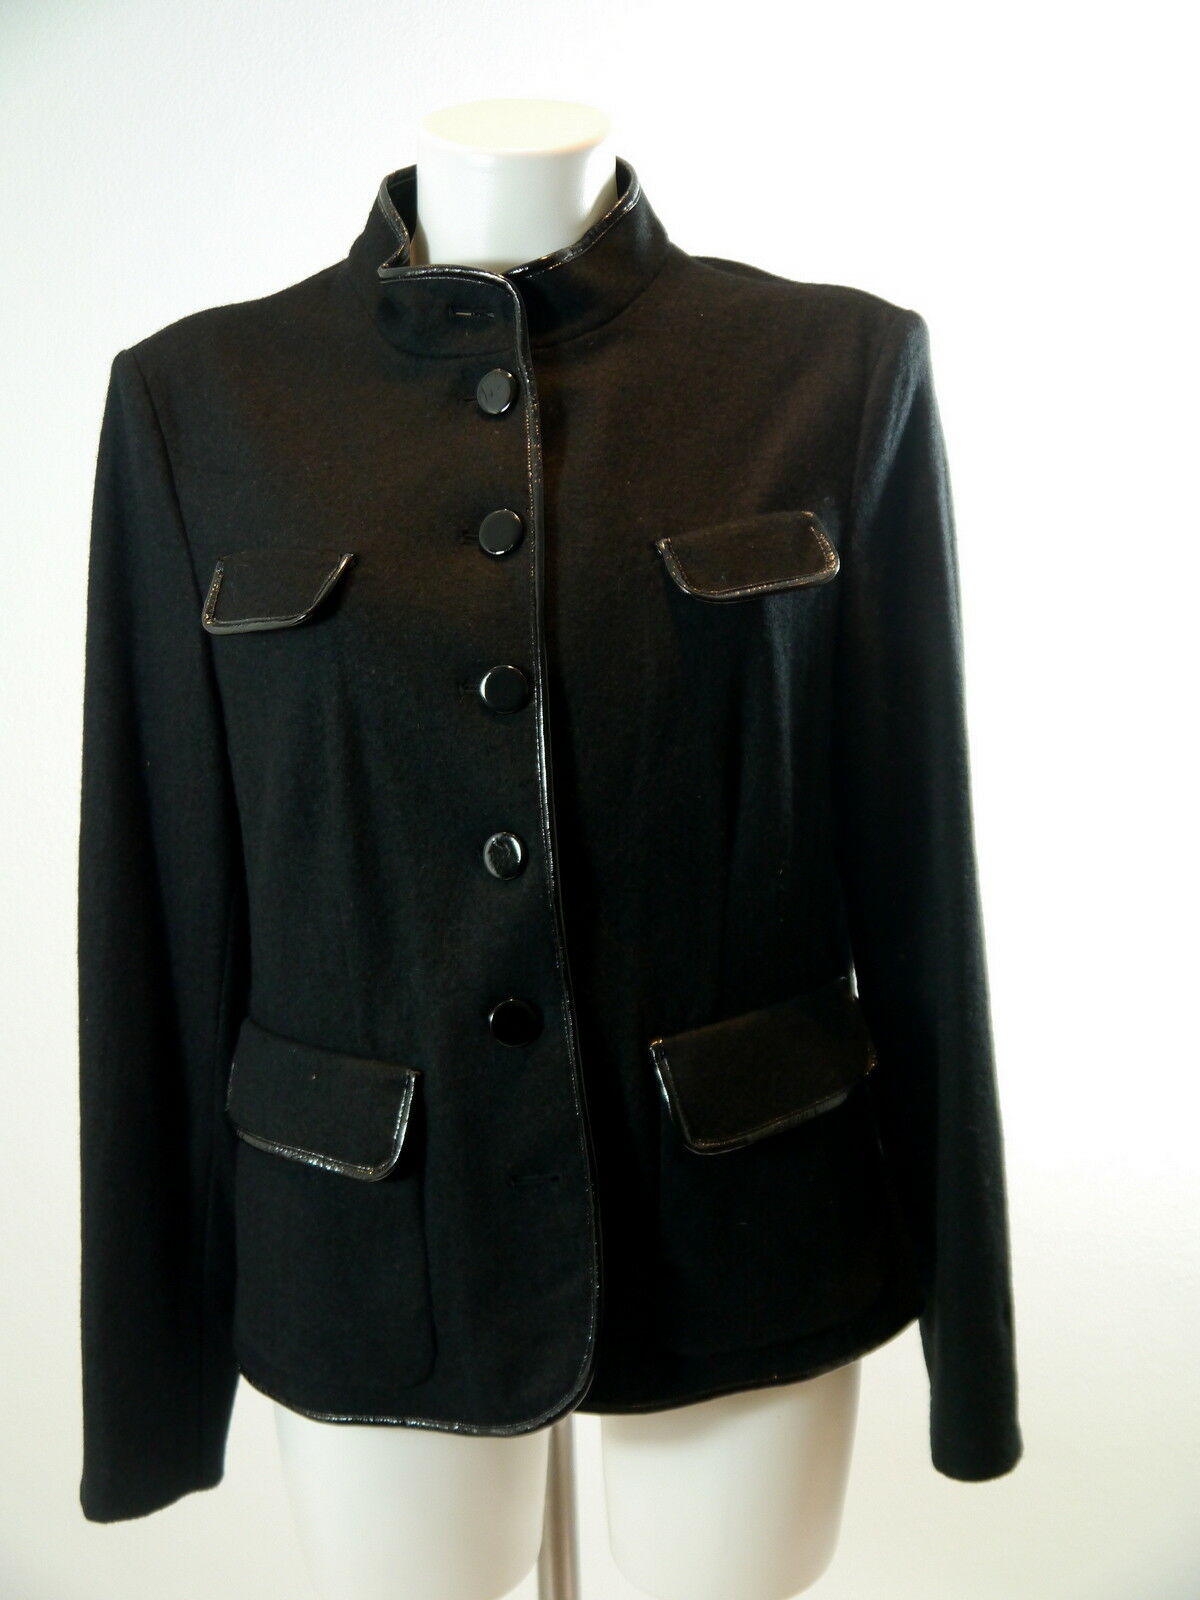 check out 055d5 66eca schwarz Blazer Wolljacke Walkjacke taill. STEILherrenN Gr.42 ...